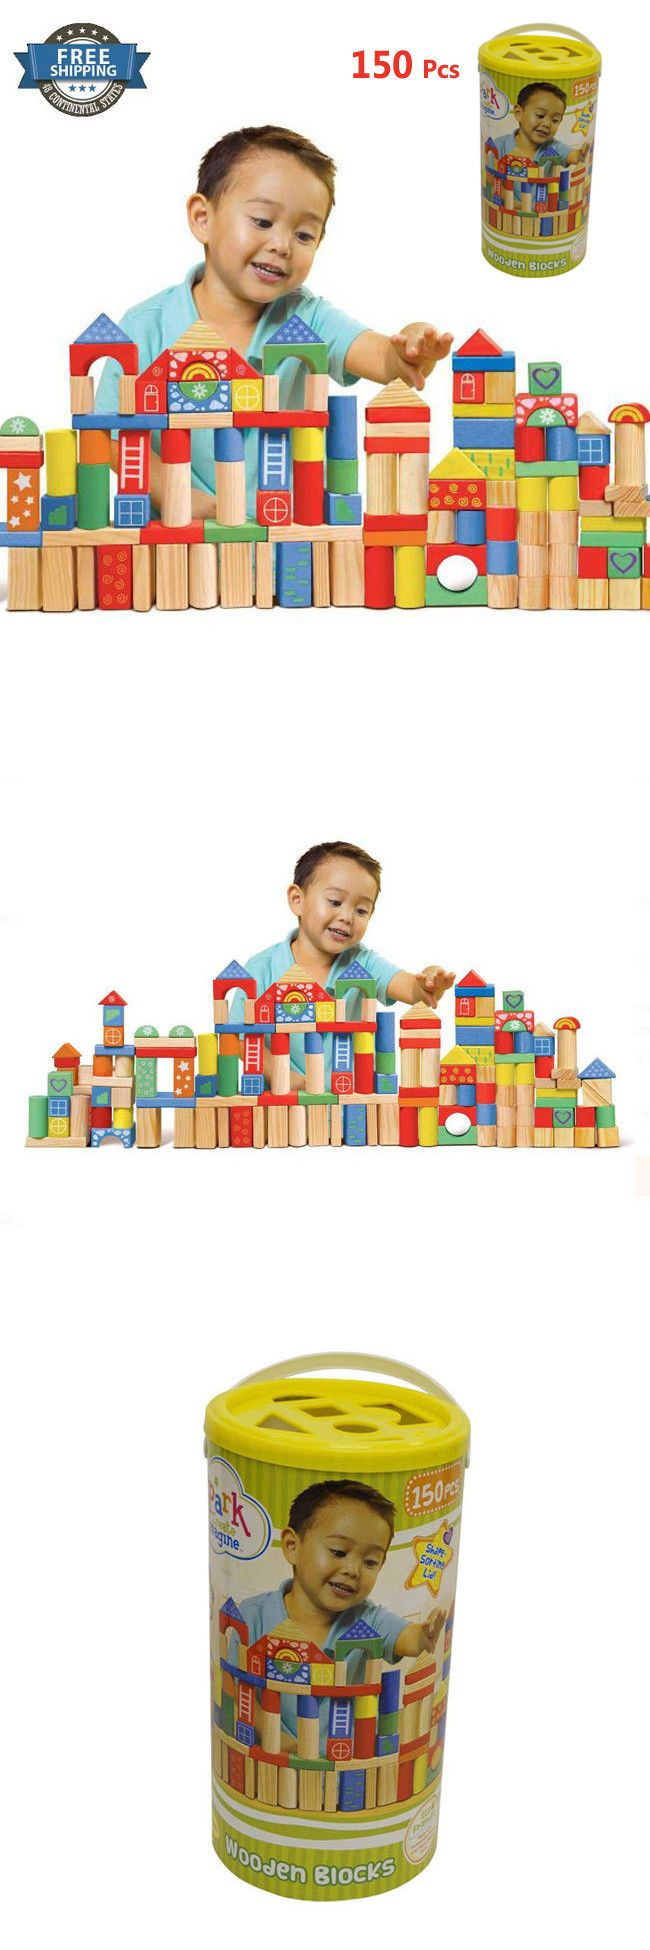 Blocks and Sorters 100225: Baby Toy 18 Months For 1 2 3 4 5 Year Best Boys Girls Toddler Children Gifts Age -> BUY IT NOW ONLY: $36.9 on eBay!